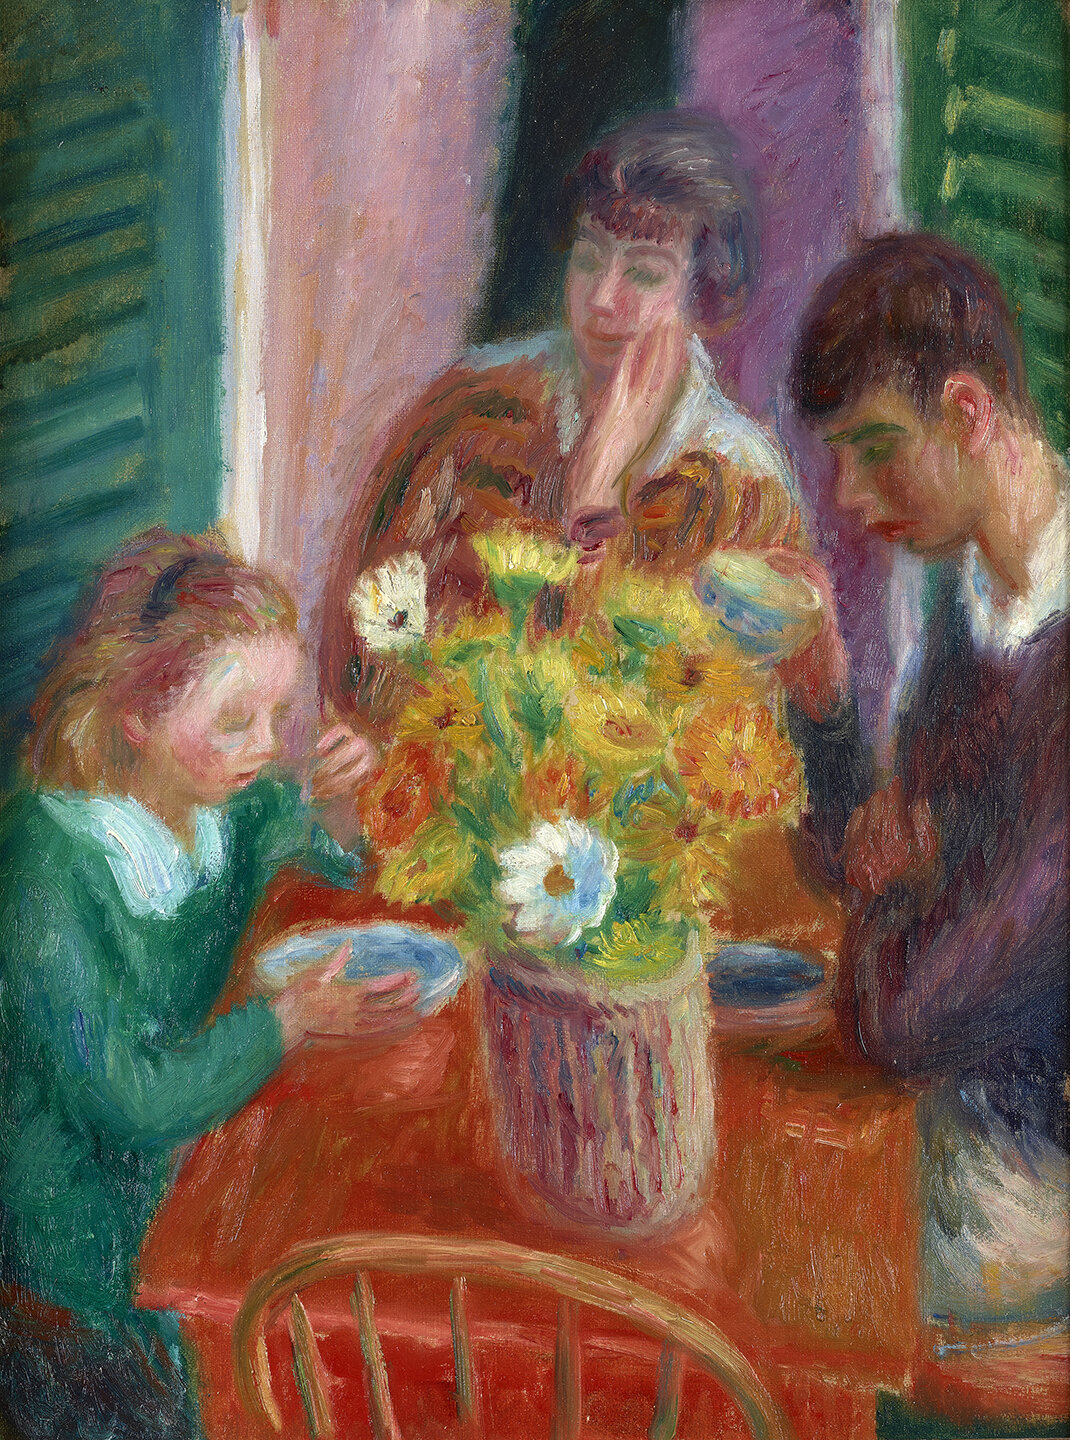 Image of three figures seated at a table on a porch. Yellow bouquet of flowers in center